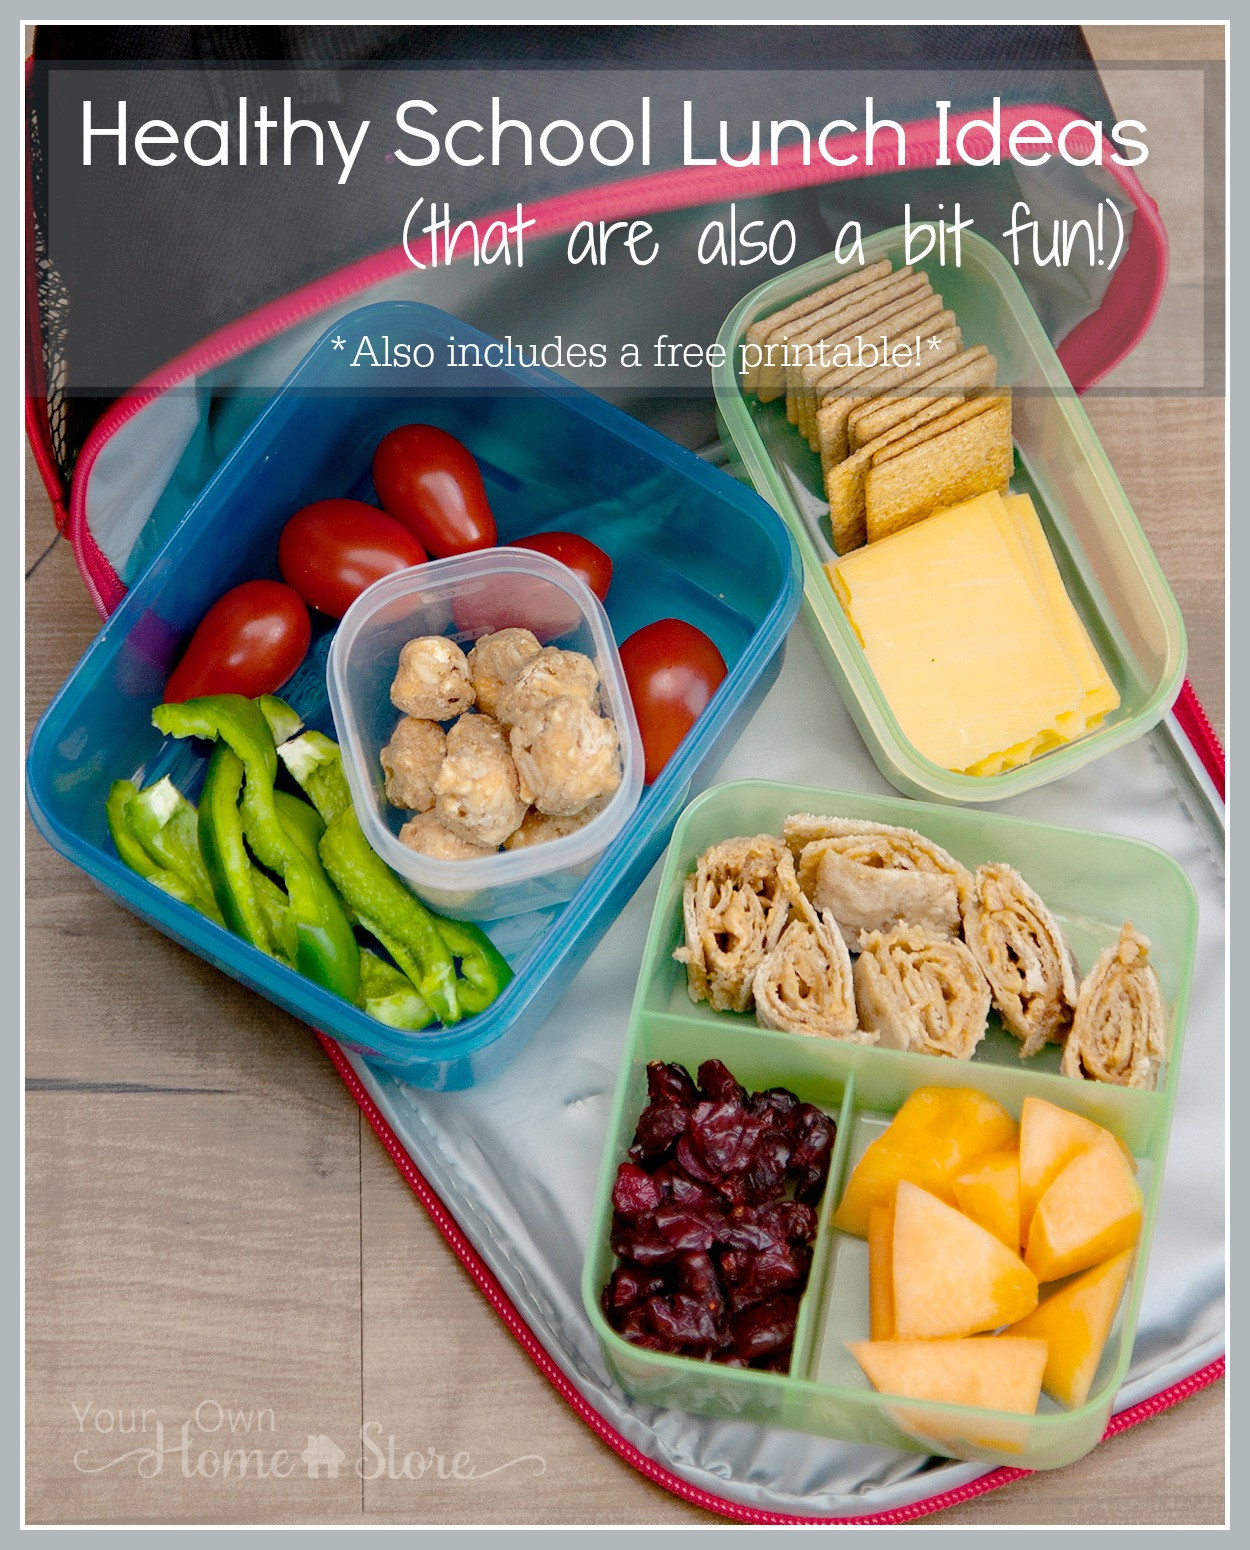 School Lunches Healthy  Healthy school lunch ideas that are also a bit fun